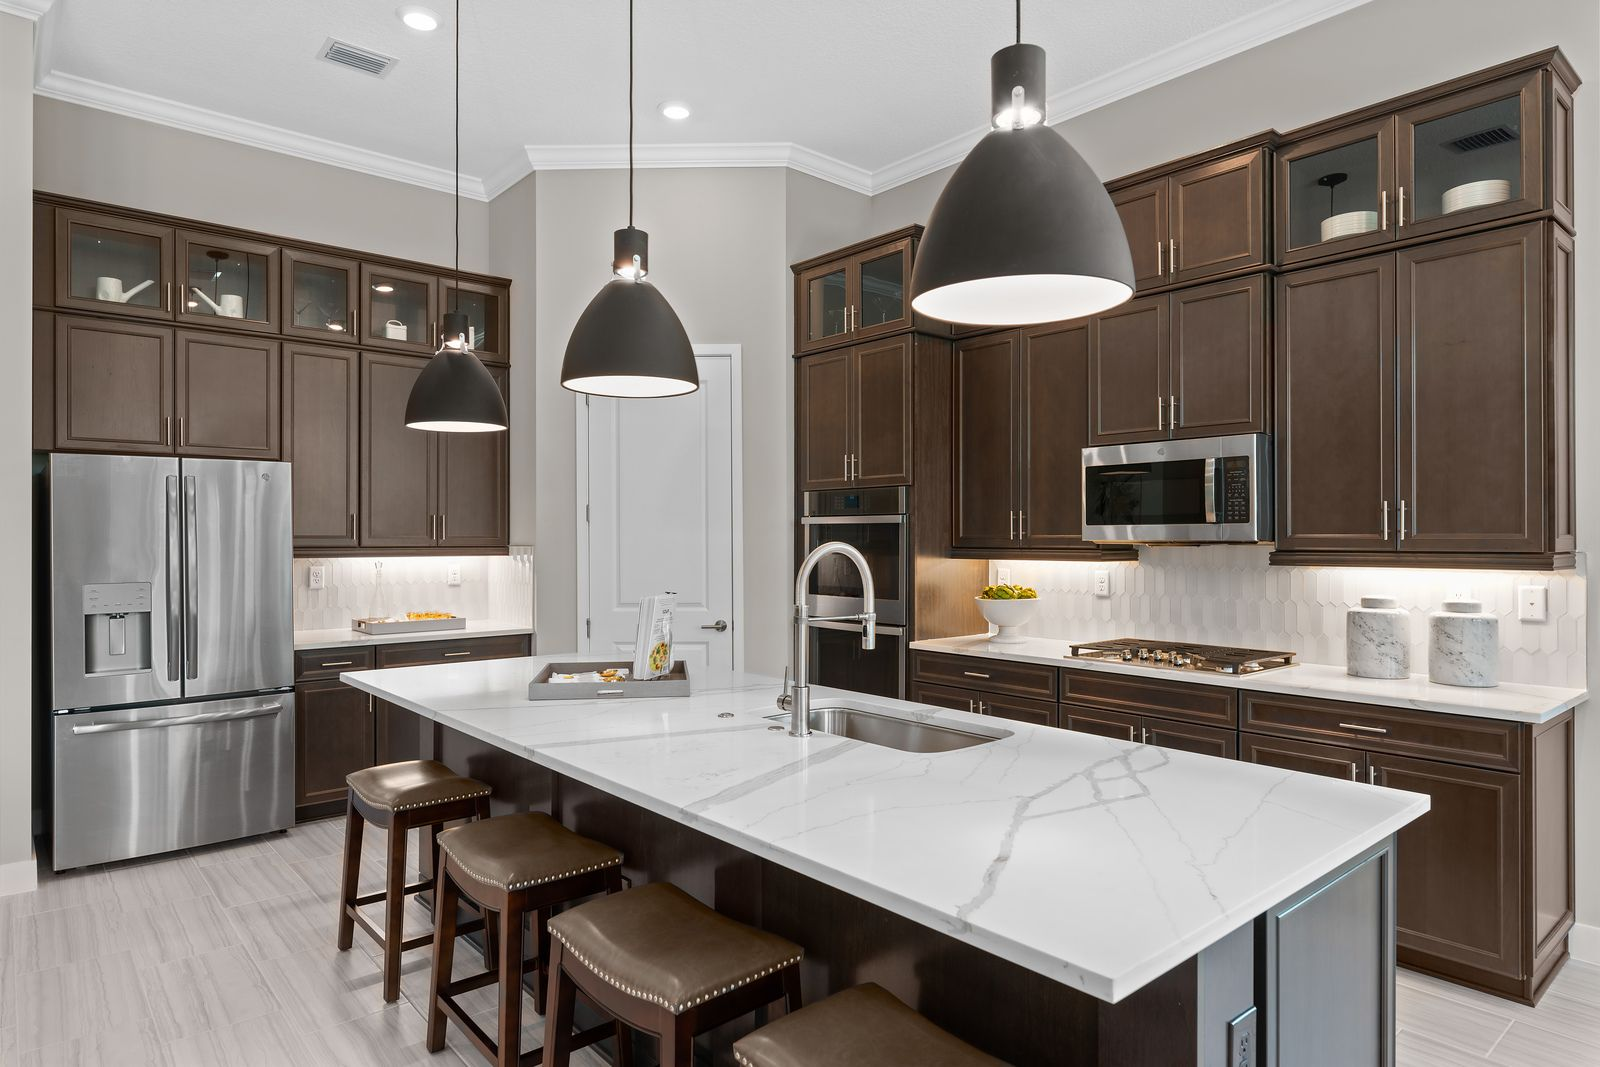 Kitchen featured in the Andros- The Biltmore Collection By Ryan Homes